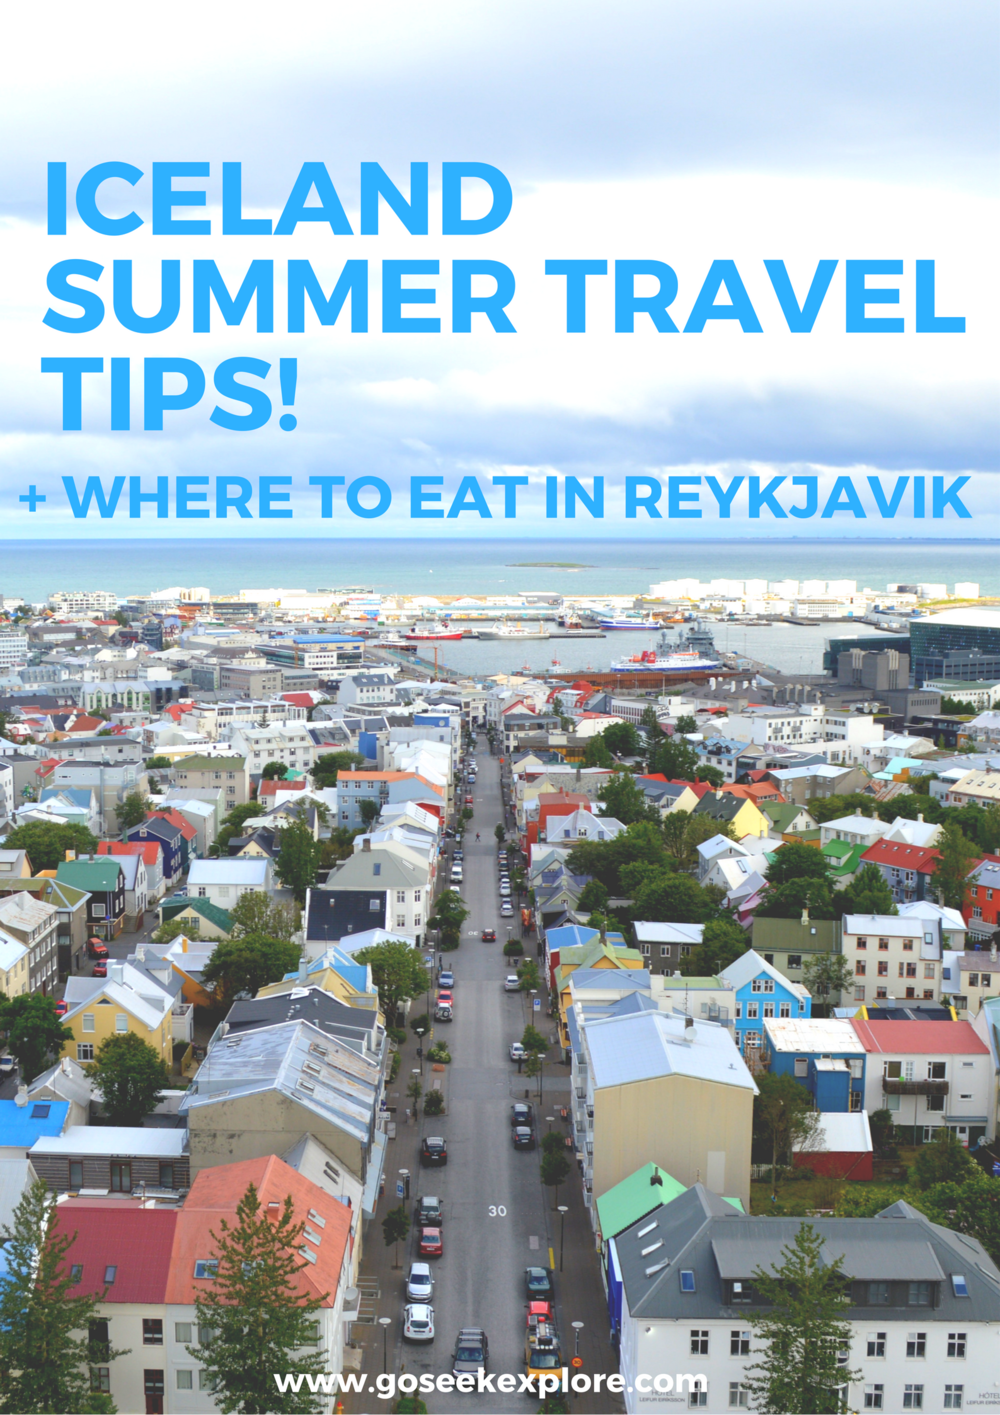 Iceland Summer Travel Tips! Plus 4 Places to eat in Reykjavik